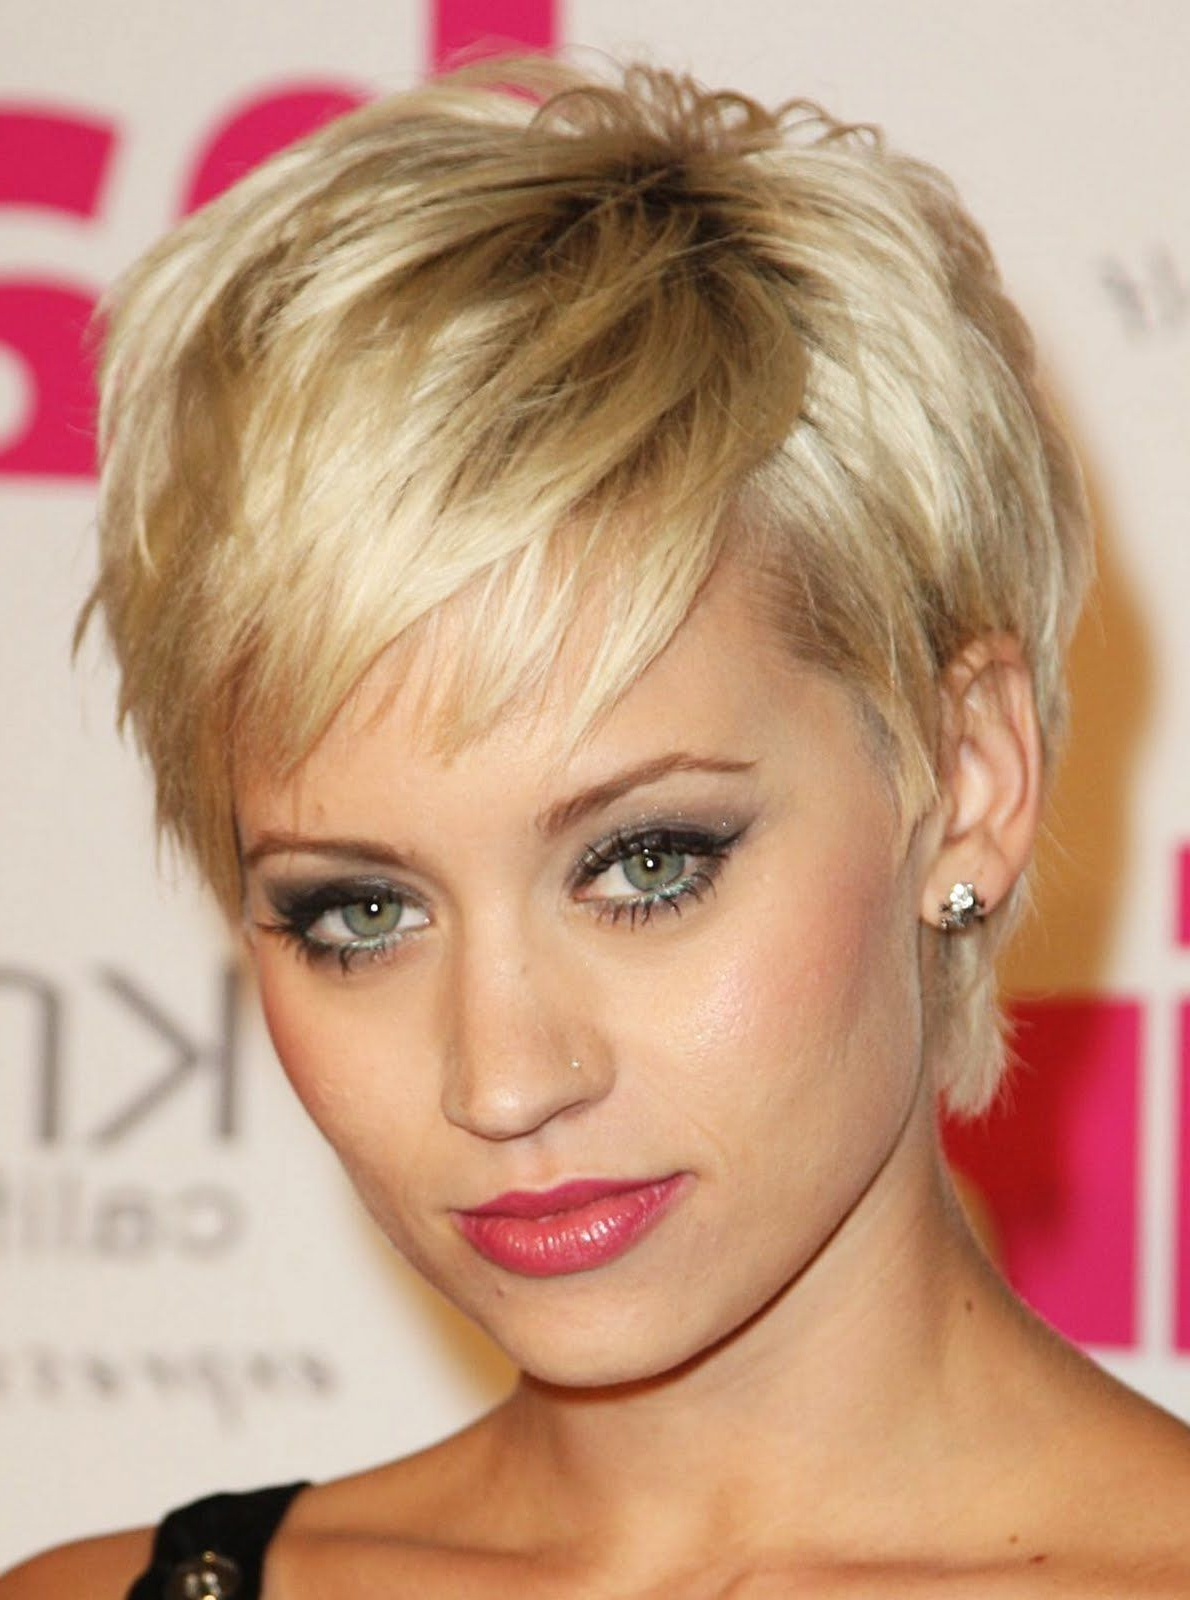 Short Hairstyles For Oval Faces   Hair Cut   Pinterest   Short Hair Inside Cute Short Hairstyles For Thin Hair (View 4 of 25)